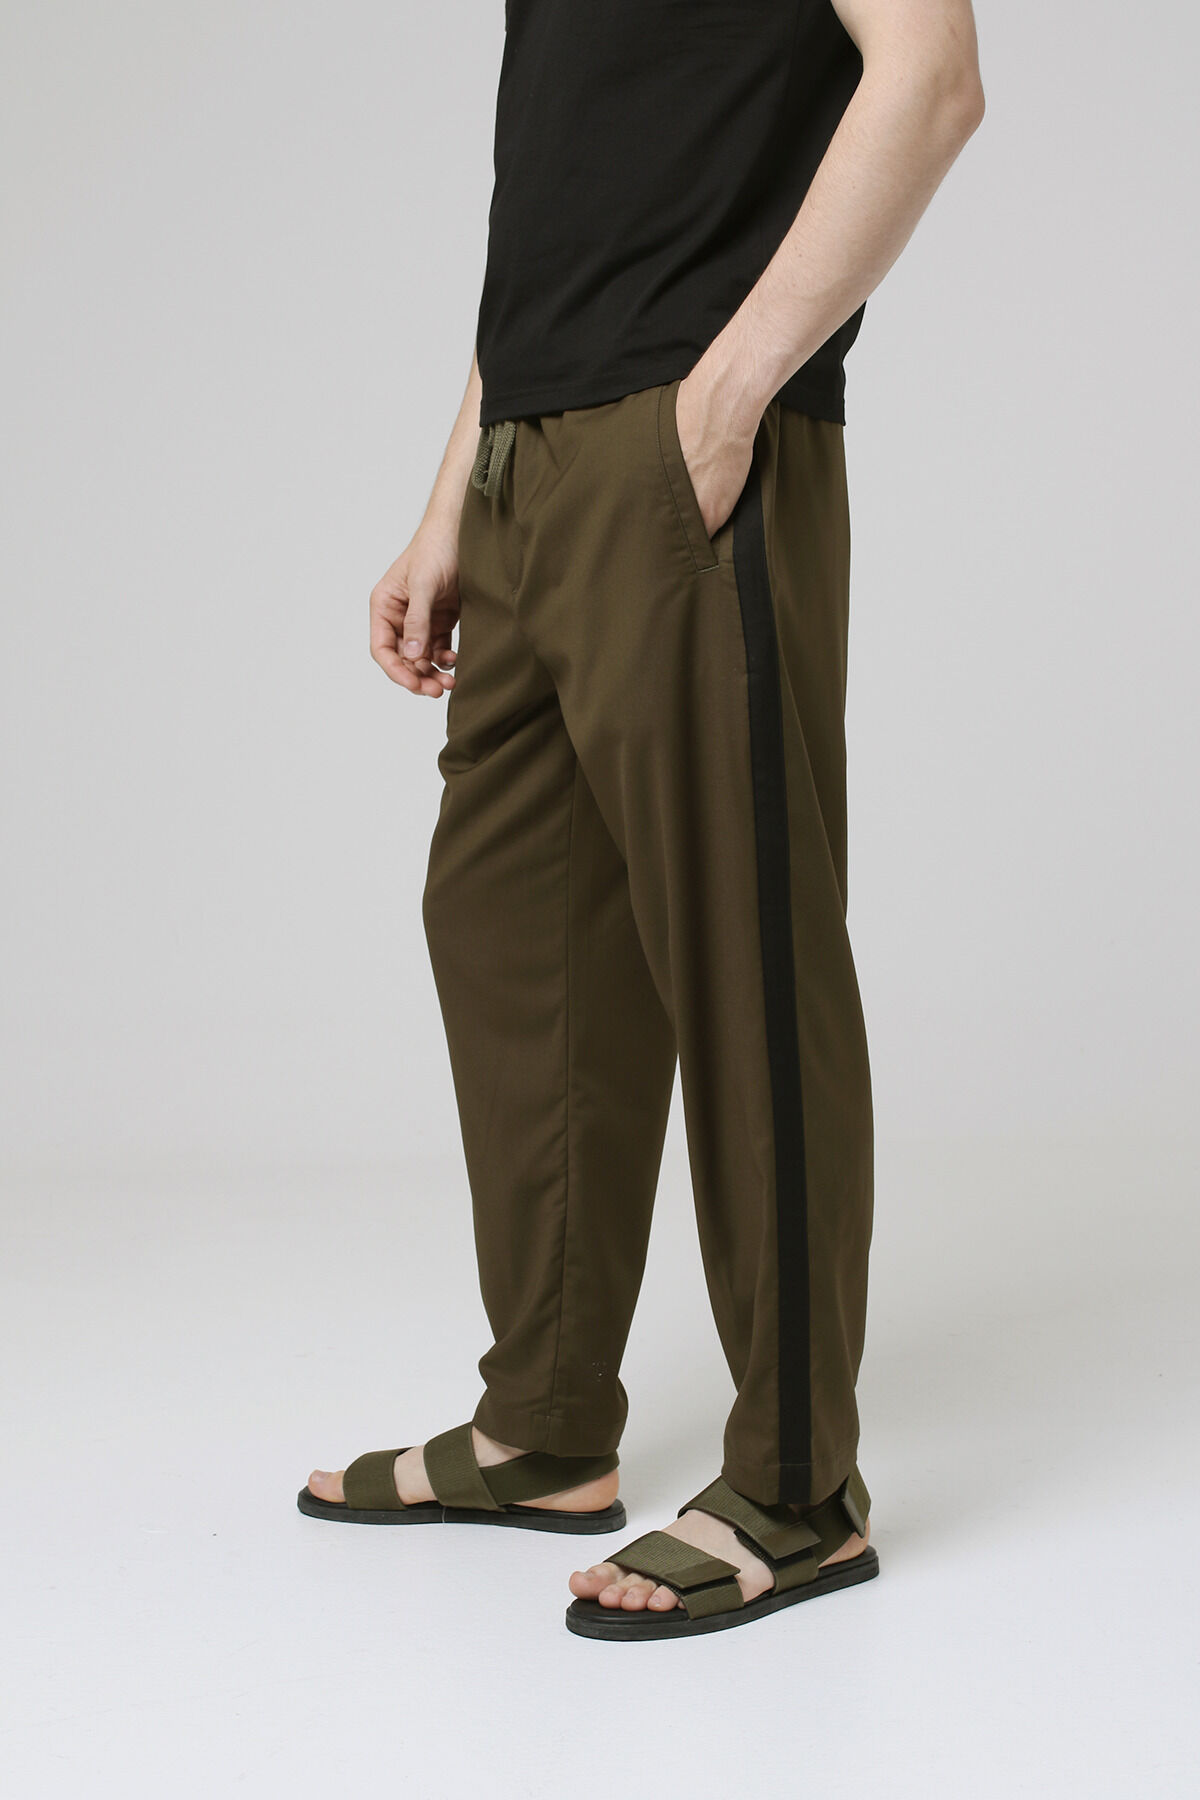 CARLTON TROUSER Comfort stretch - Carrot Fit